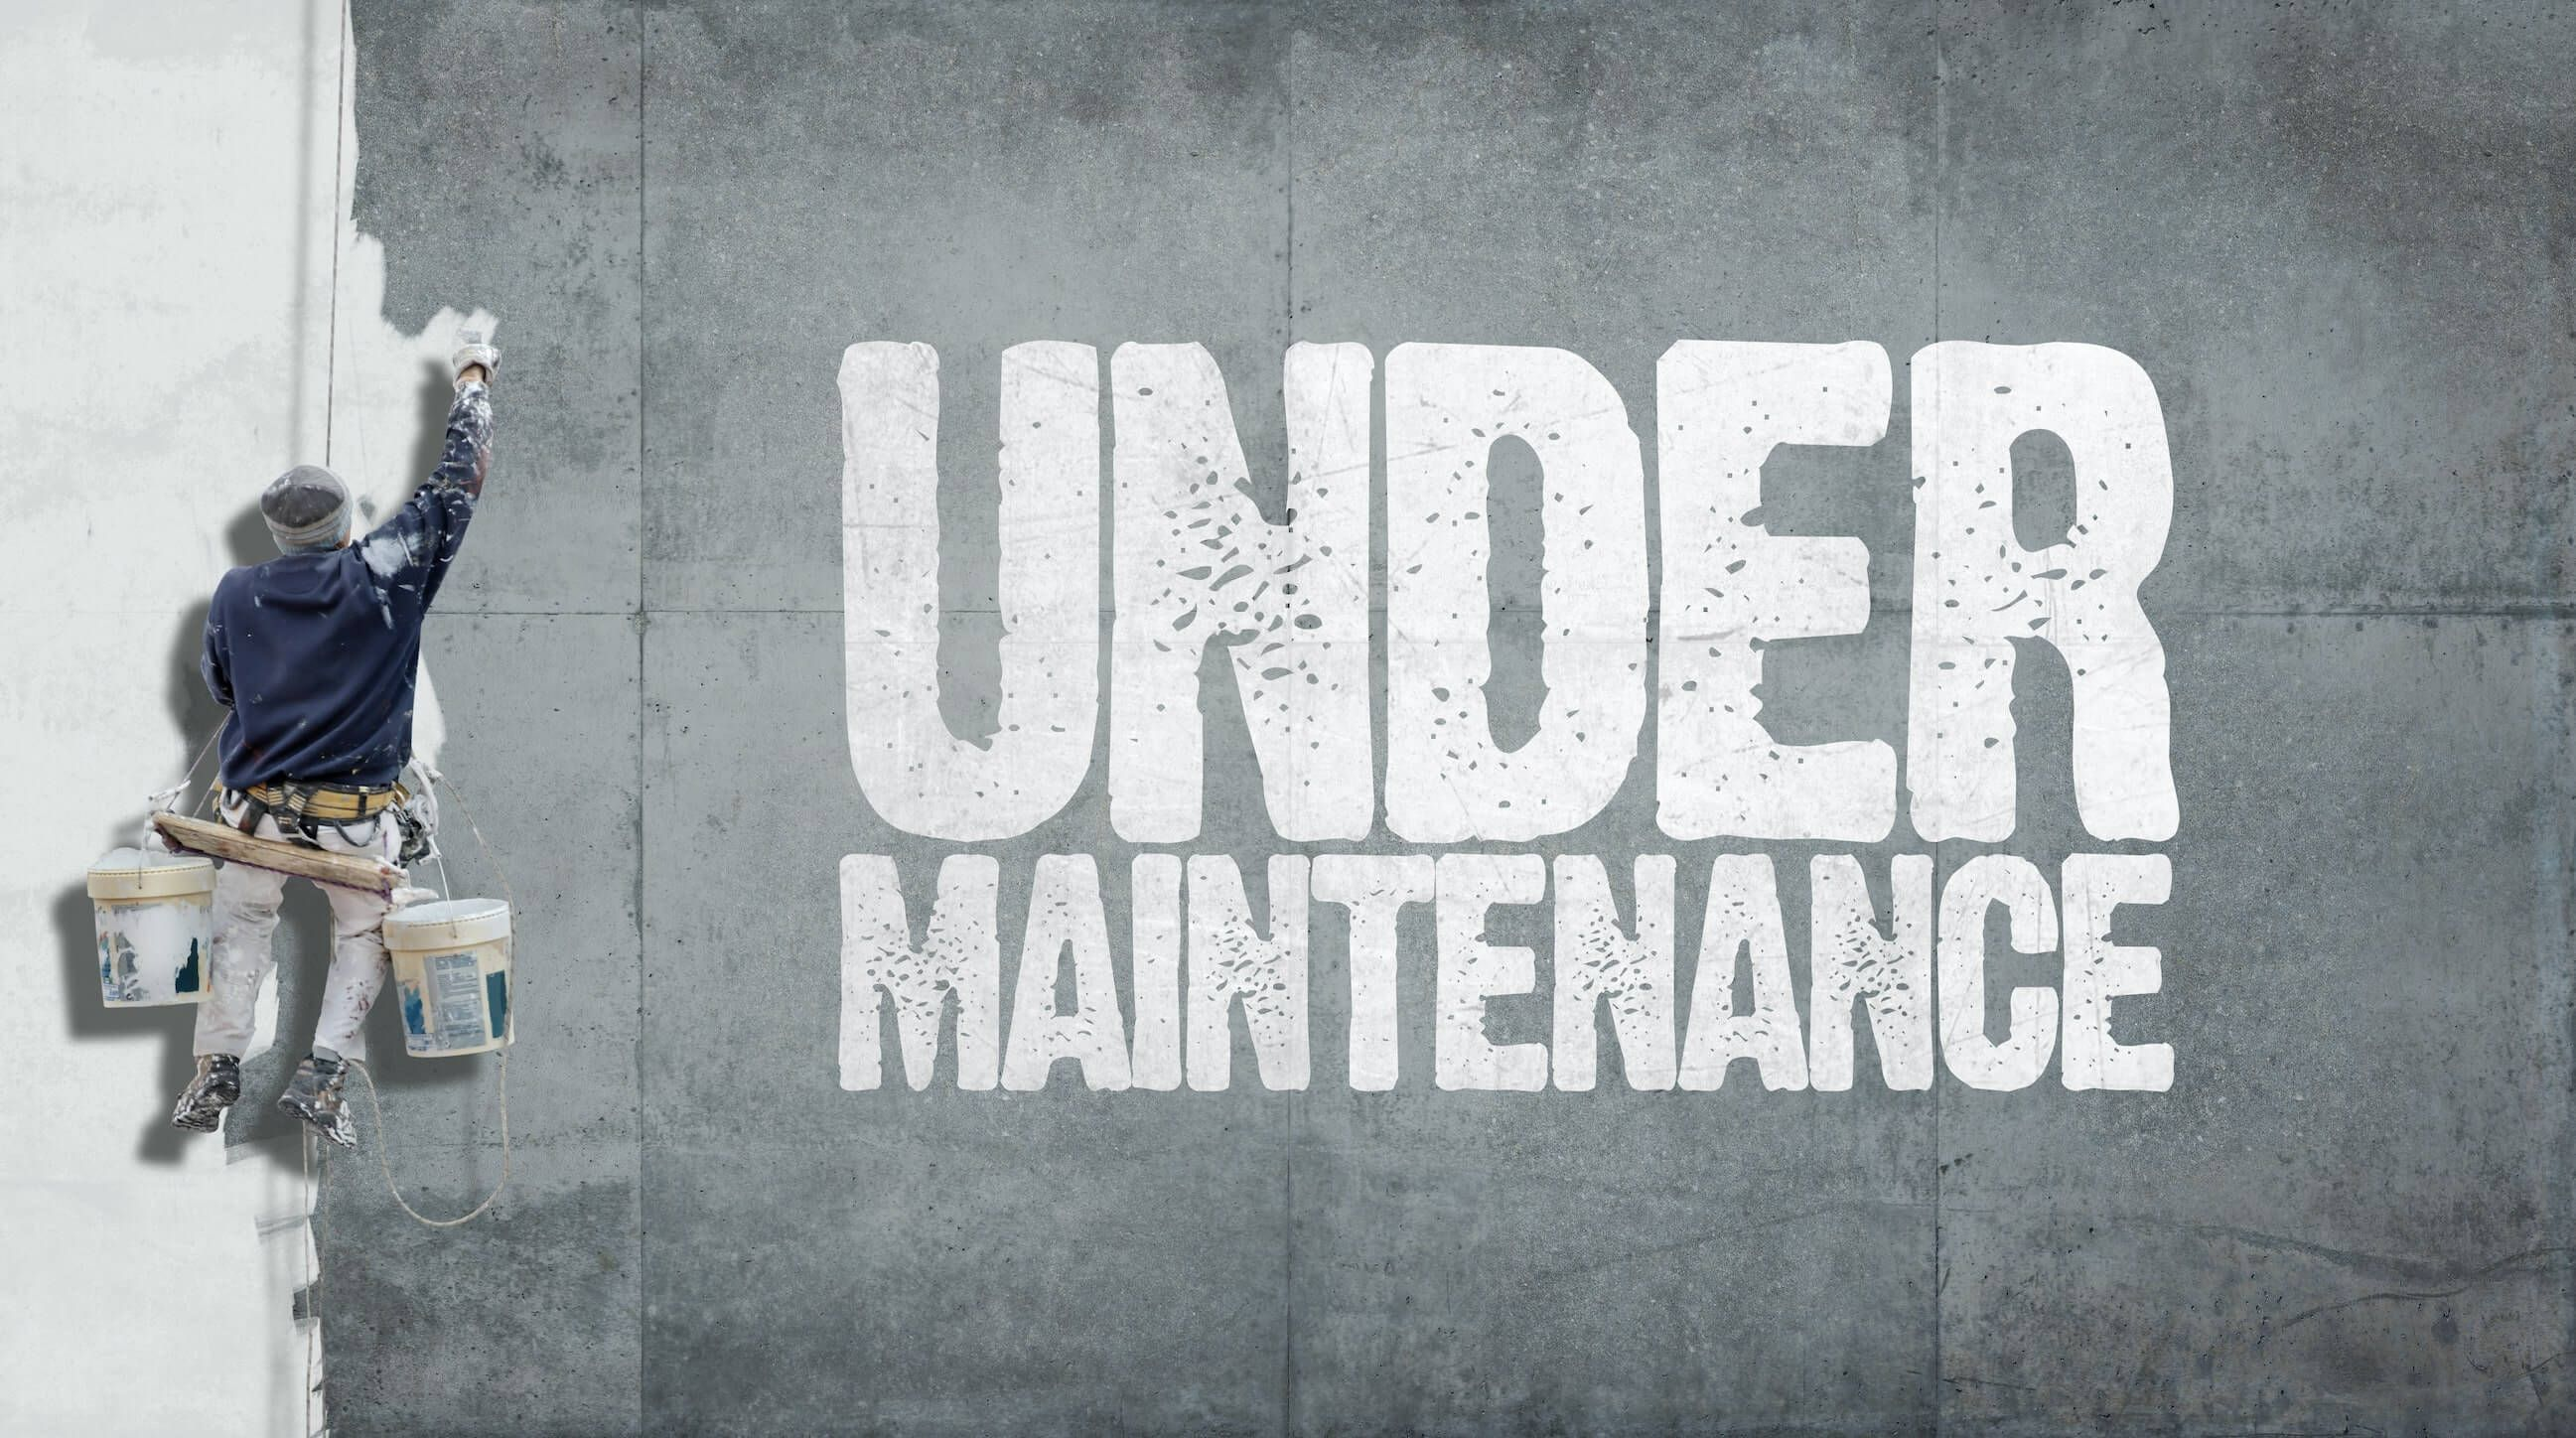 We are under maintenance